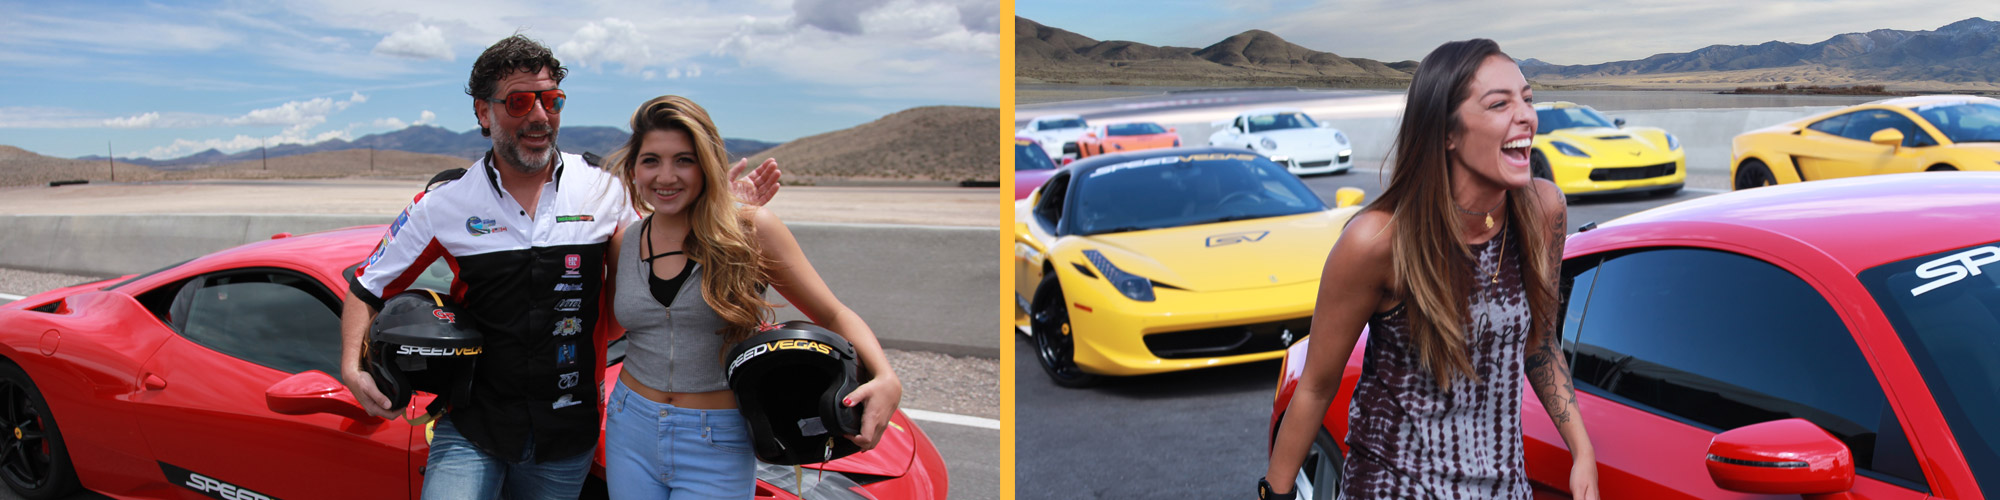 racing experience in exotics in las vegas